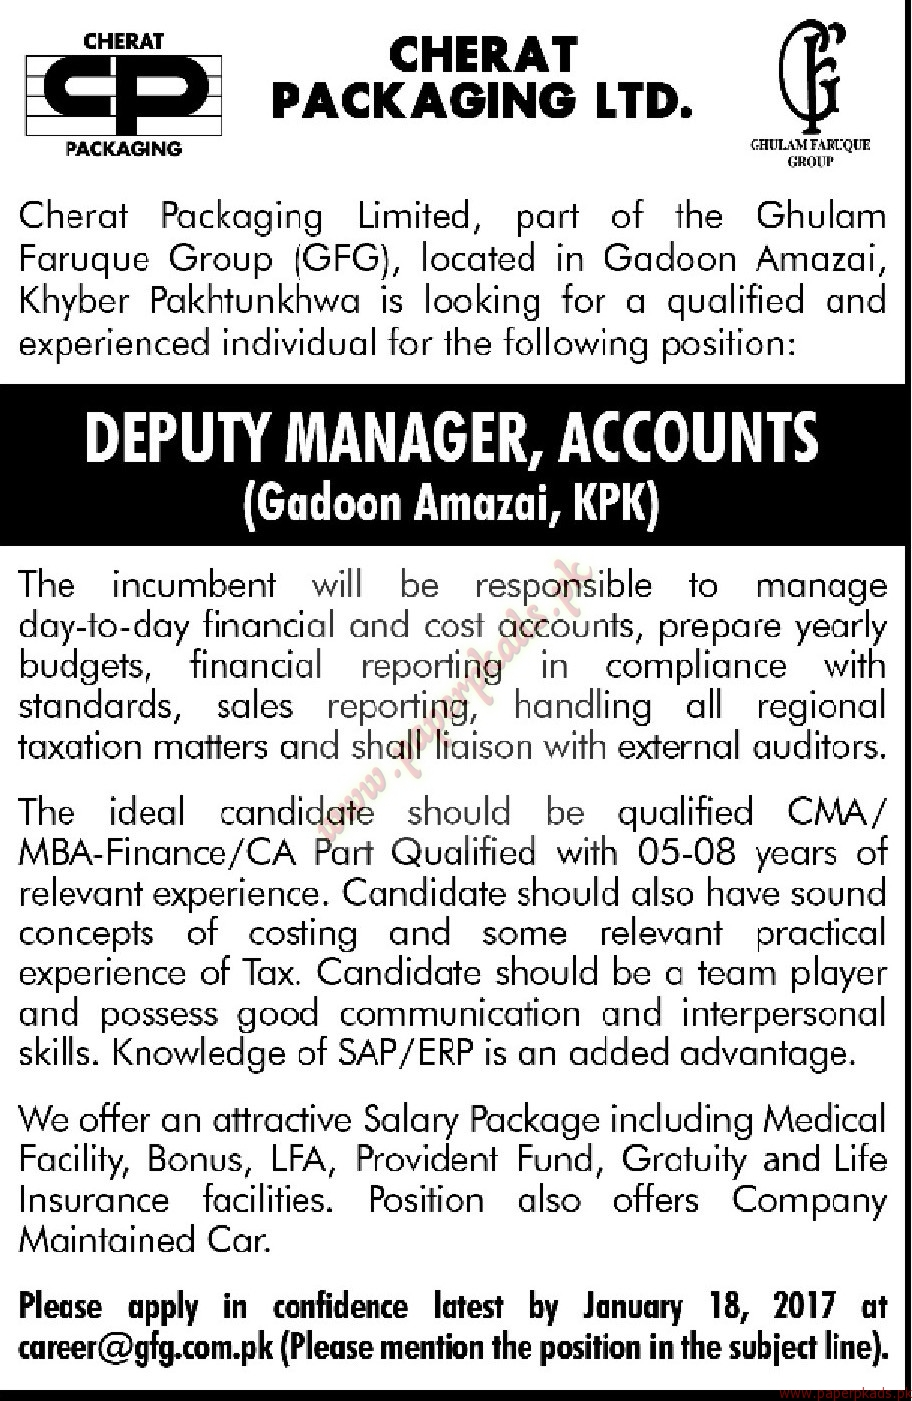 Cherat Packaging Ltd Jobs - Mashriq Jobs ads 01 January 2017